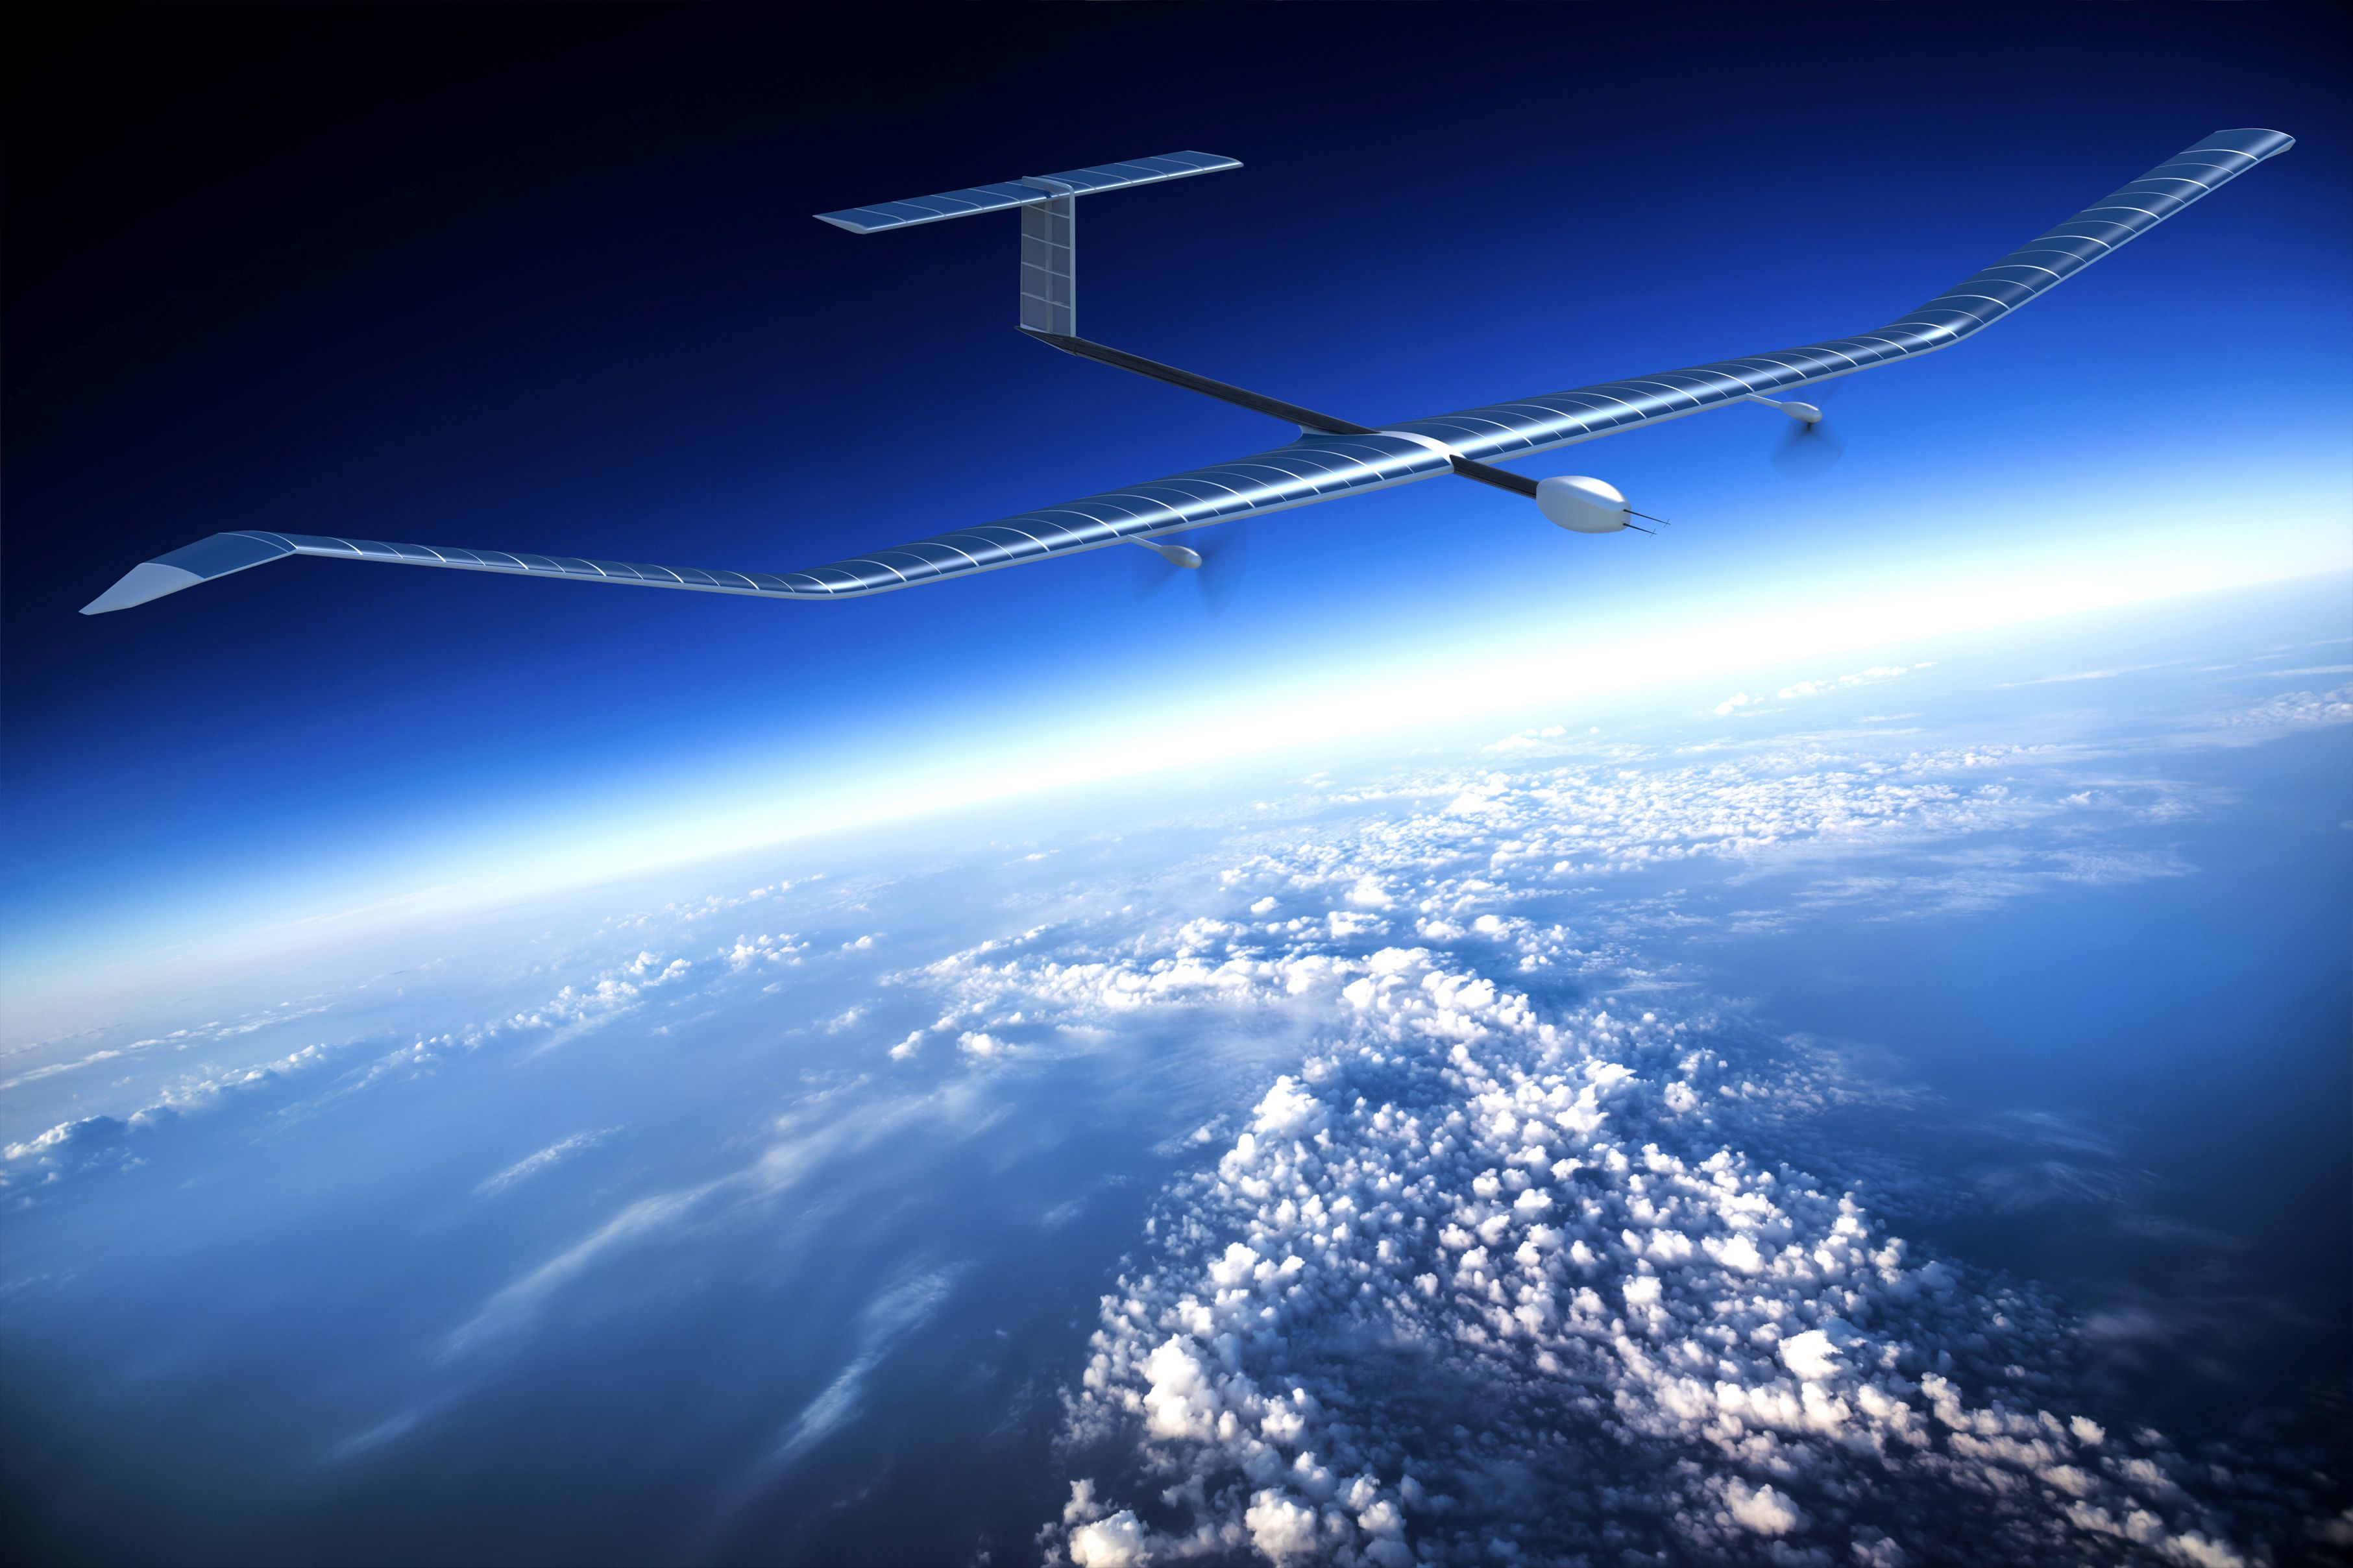 Facebook and Airbus jointly lobby EU Commission on drones, email shows